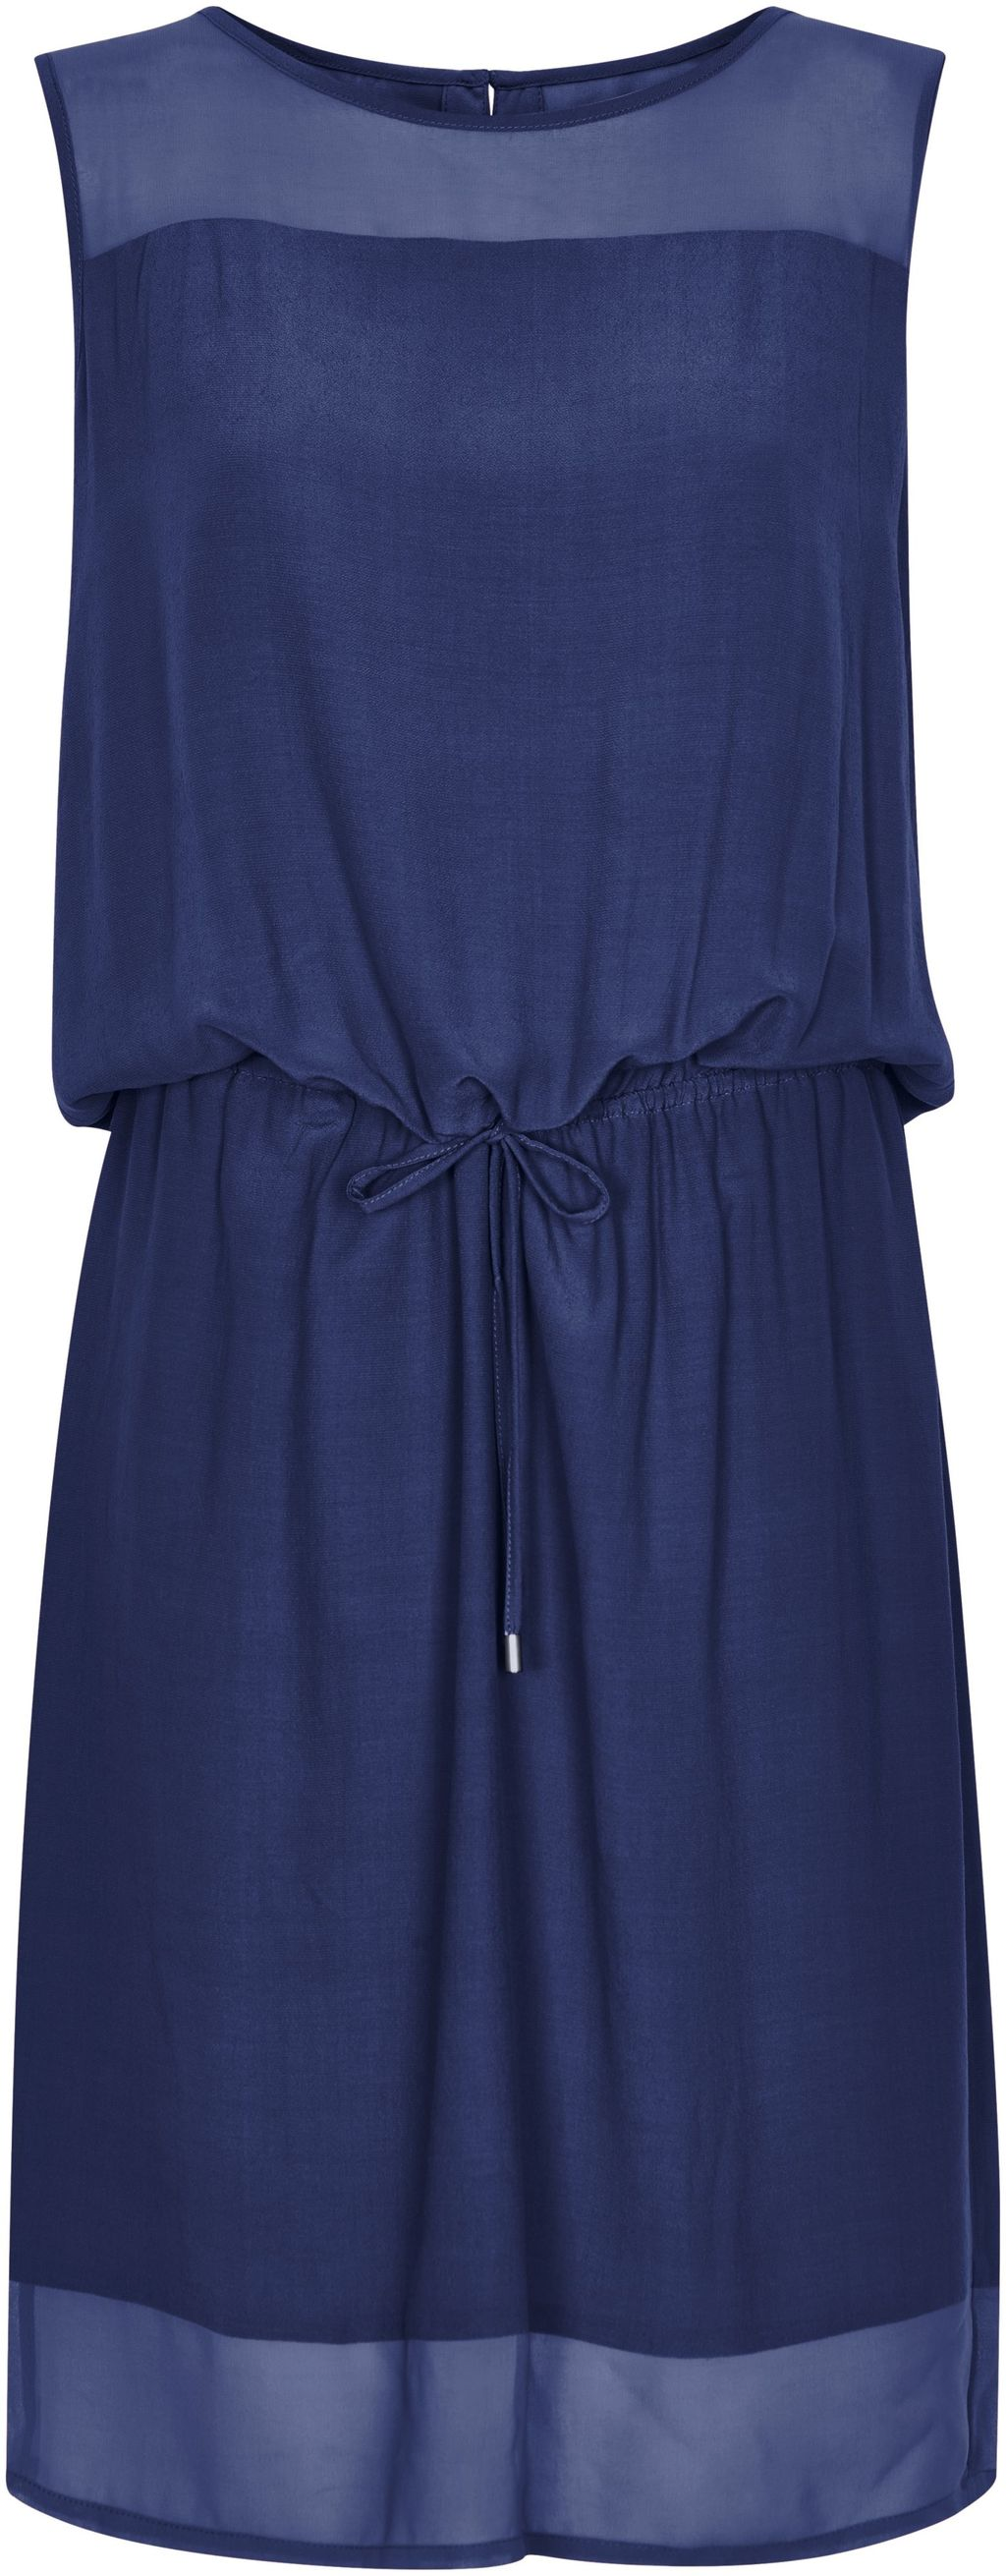 Dress With Drawstring Waist, Navy - style: shift; pattern: plain; sleeve style: sleeveless; waist detail: belted waist/tie at waist/drawstring; predominant colour: navy; occasions: casual; length: just above the knee; fit: body skimming; fibres: viscose/rayon - 100%; neckline: crew; sleeve length: sleeveless; texture group: sheer fabrics/chiffon/organza etc.; pattern type: fabric; season: s/s 2016; wardrobe: basic